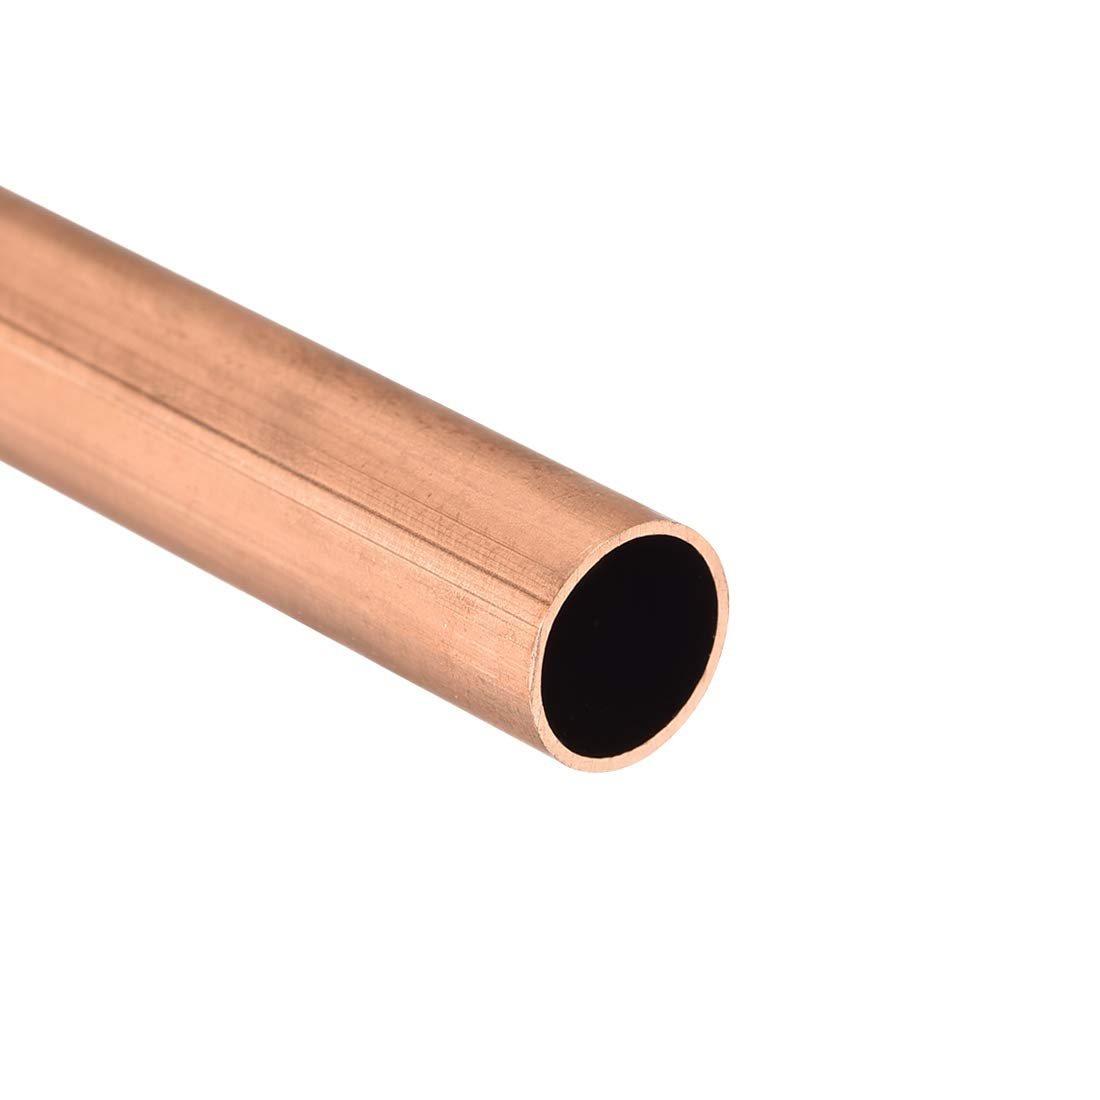 uxcell Copper Round Tube 9mm OD 0.5mm Wall Thickness 300mm Long Hollow Straight Pipe Tubing 3 Pcs